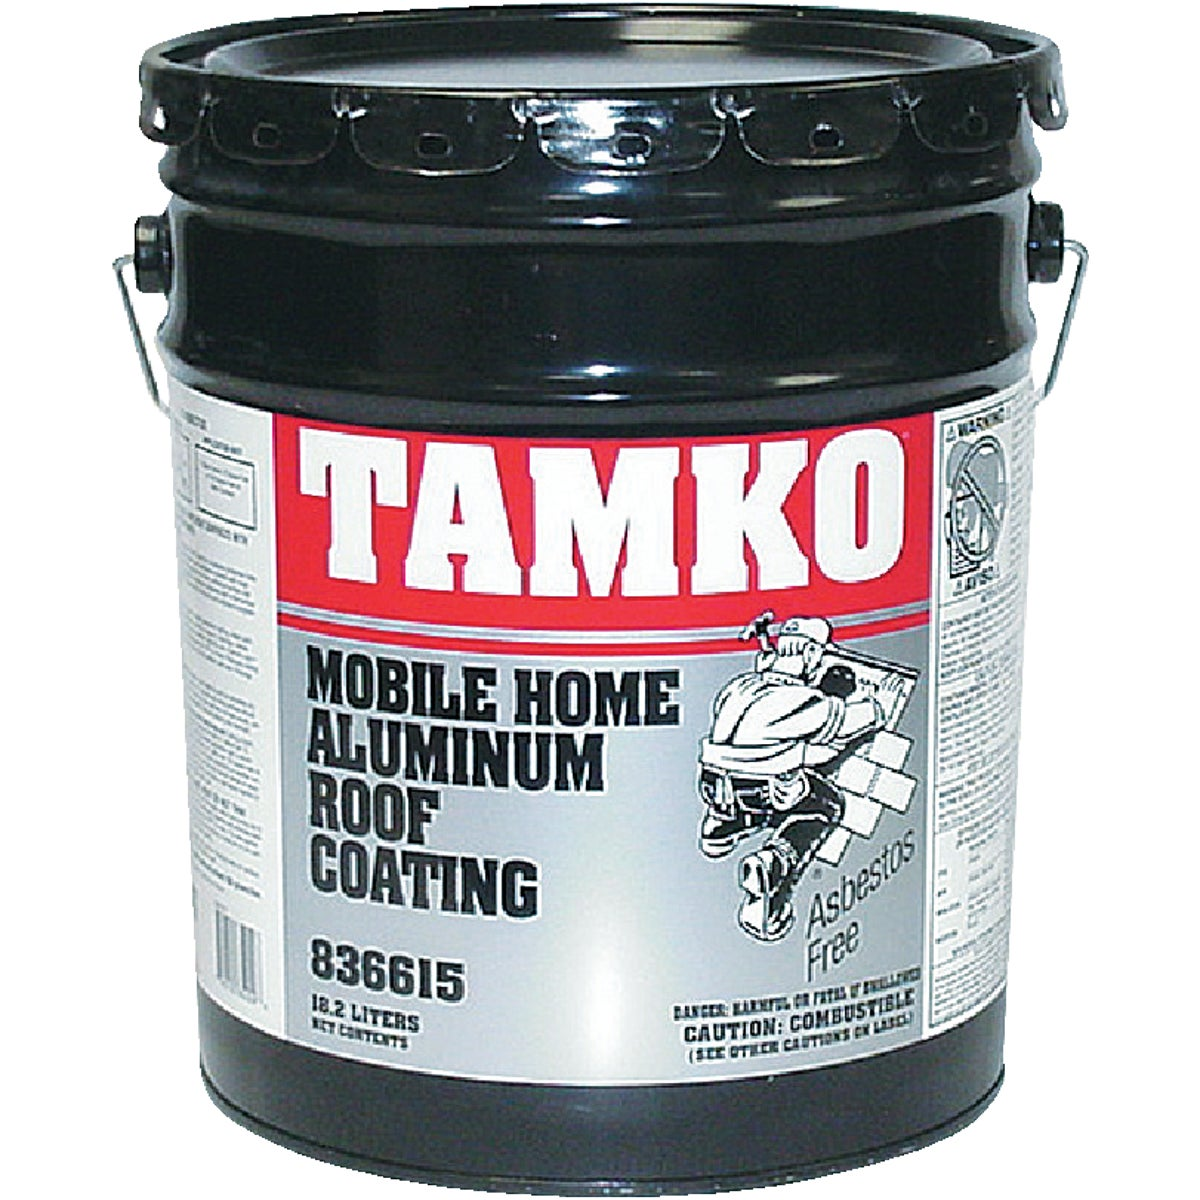 5GAL MBL/HM ROOF COATING - 30001661 by Tamko Bldg Prod Inc